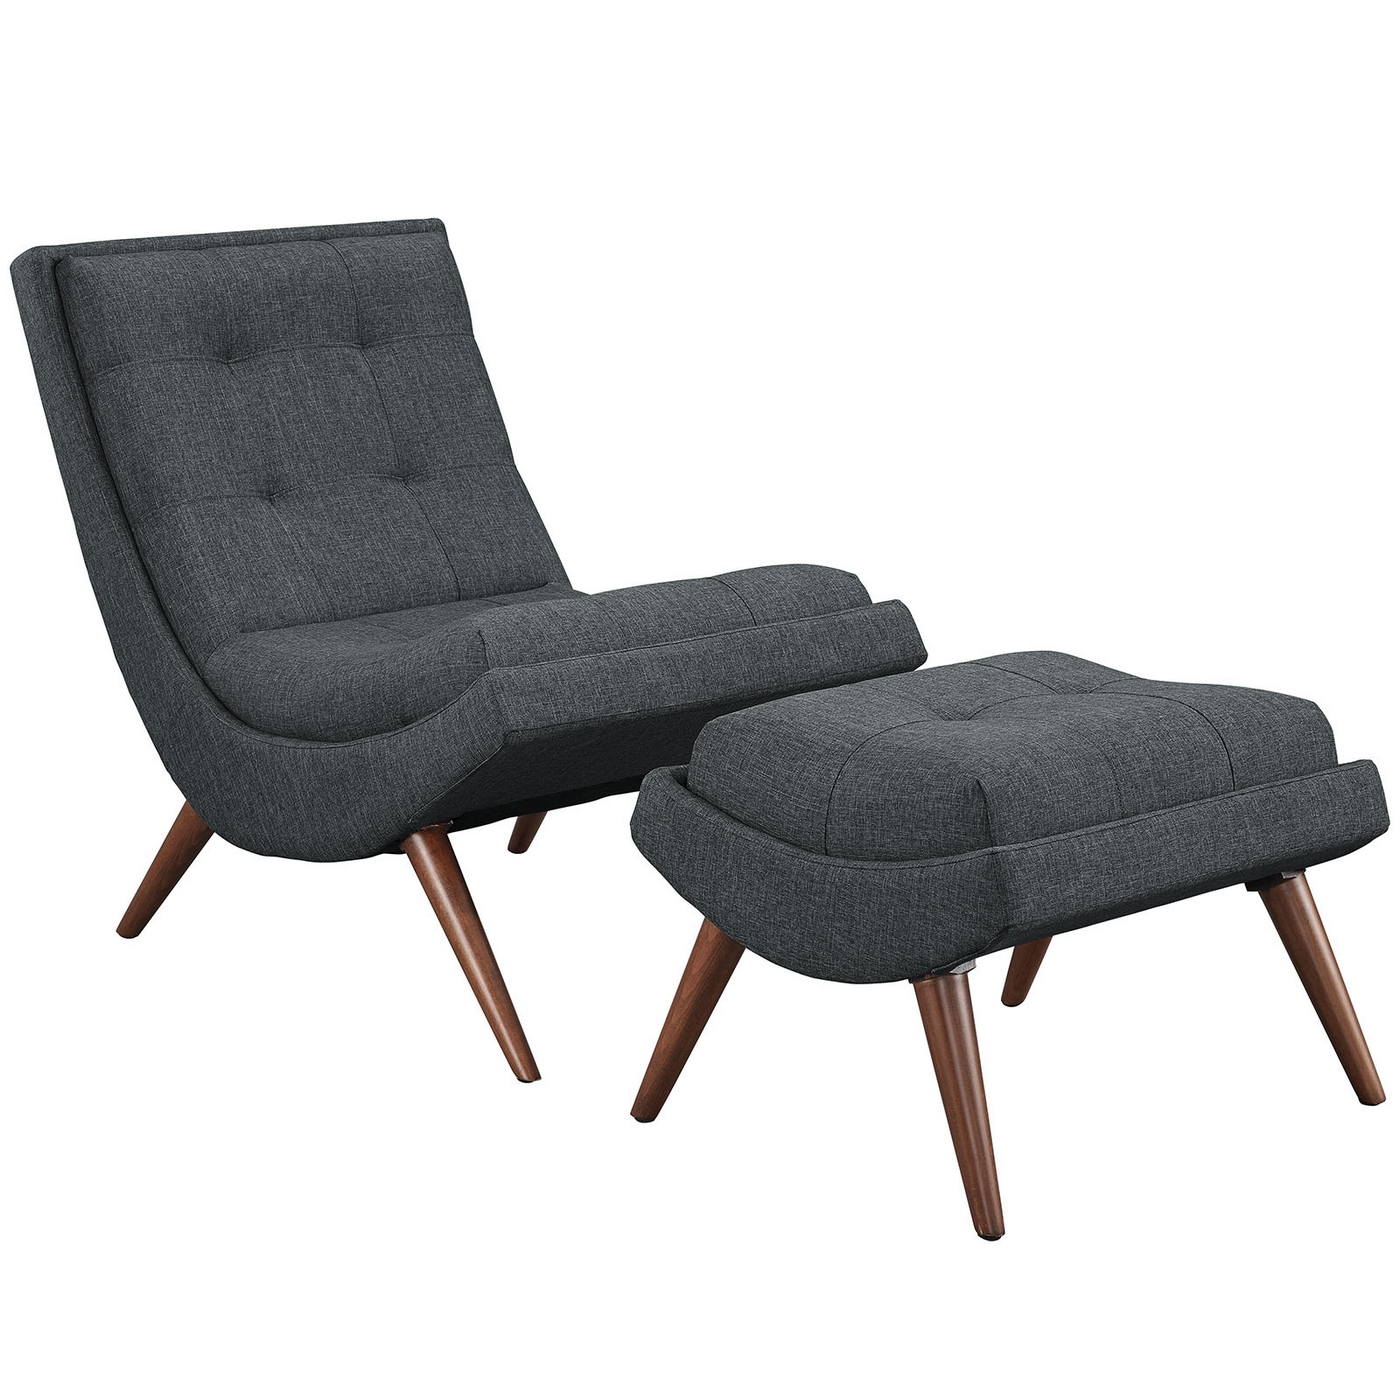 Ramp Modern Upholstered Lounge Chair And Ottoman With Wood